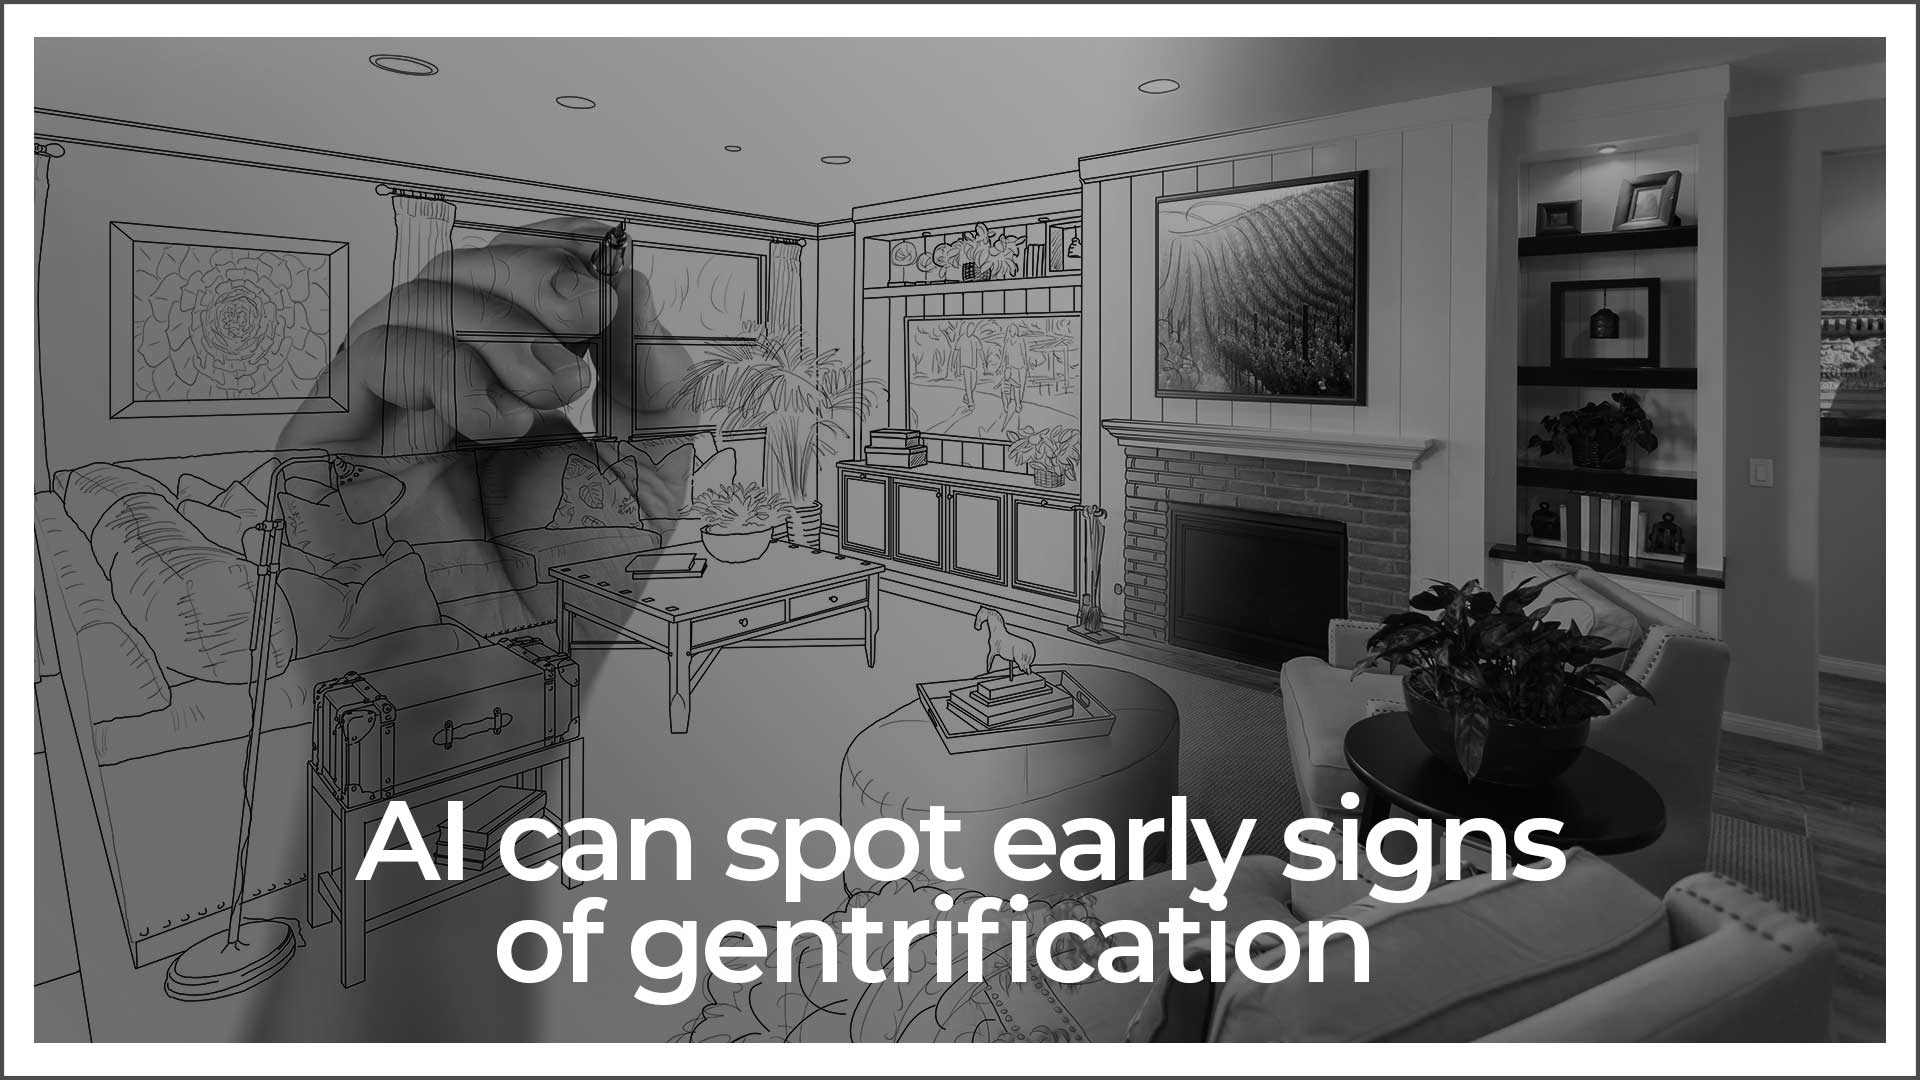 Artificial Intelligence Uses Mapping To Track Gentrification